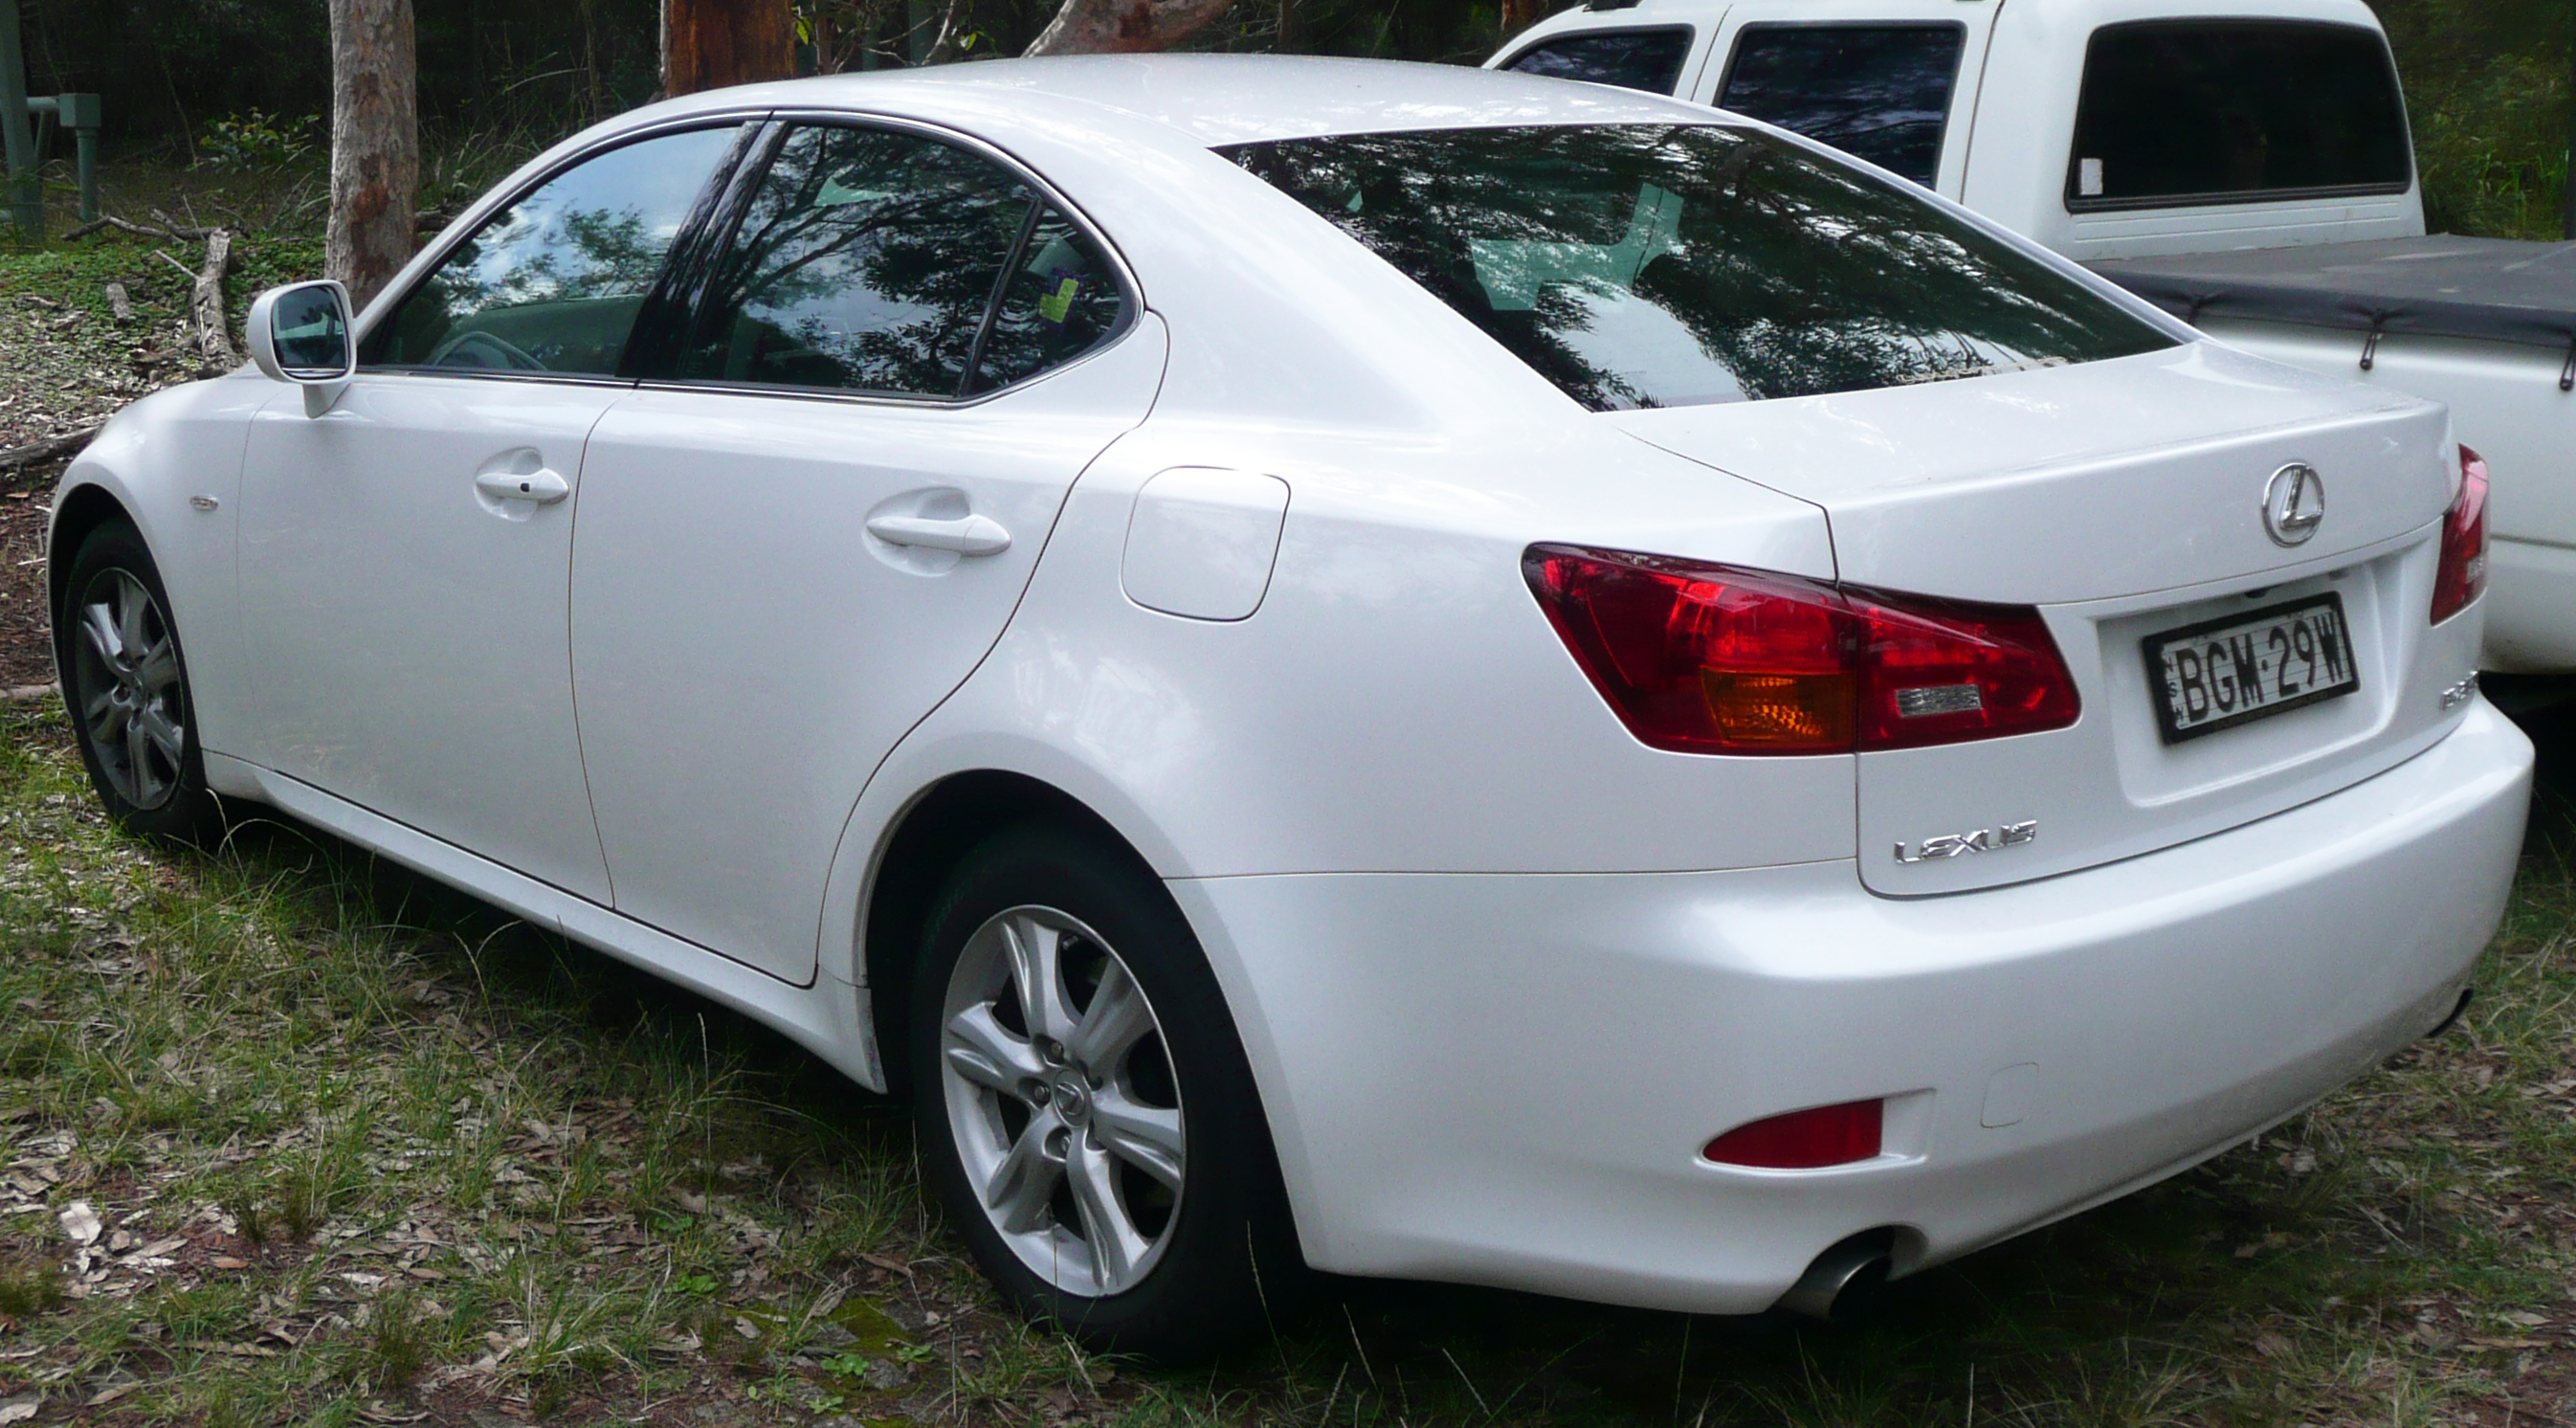 ... Lexus IS 250 2008 #7 ...